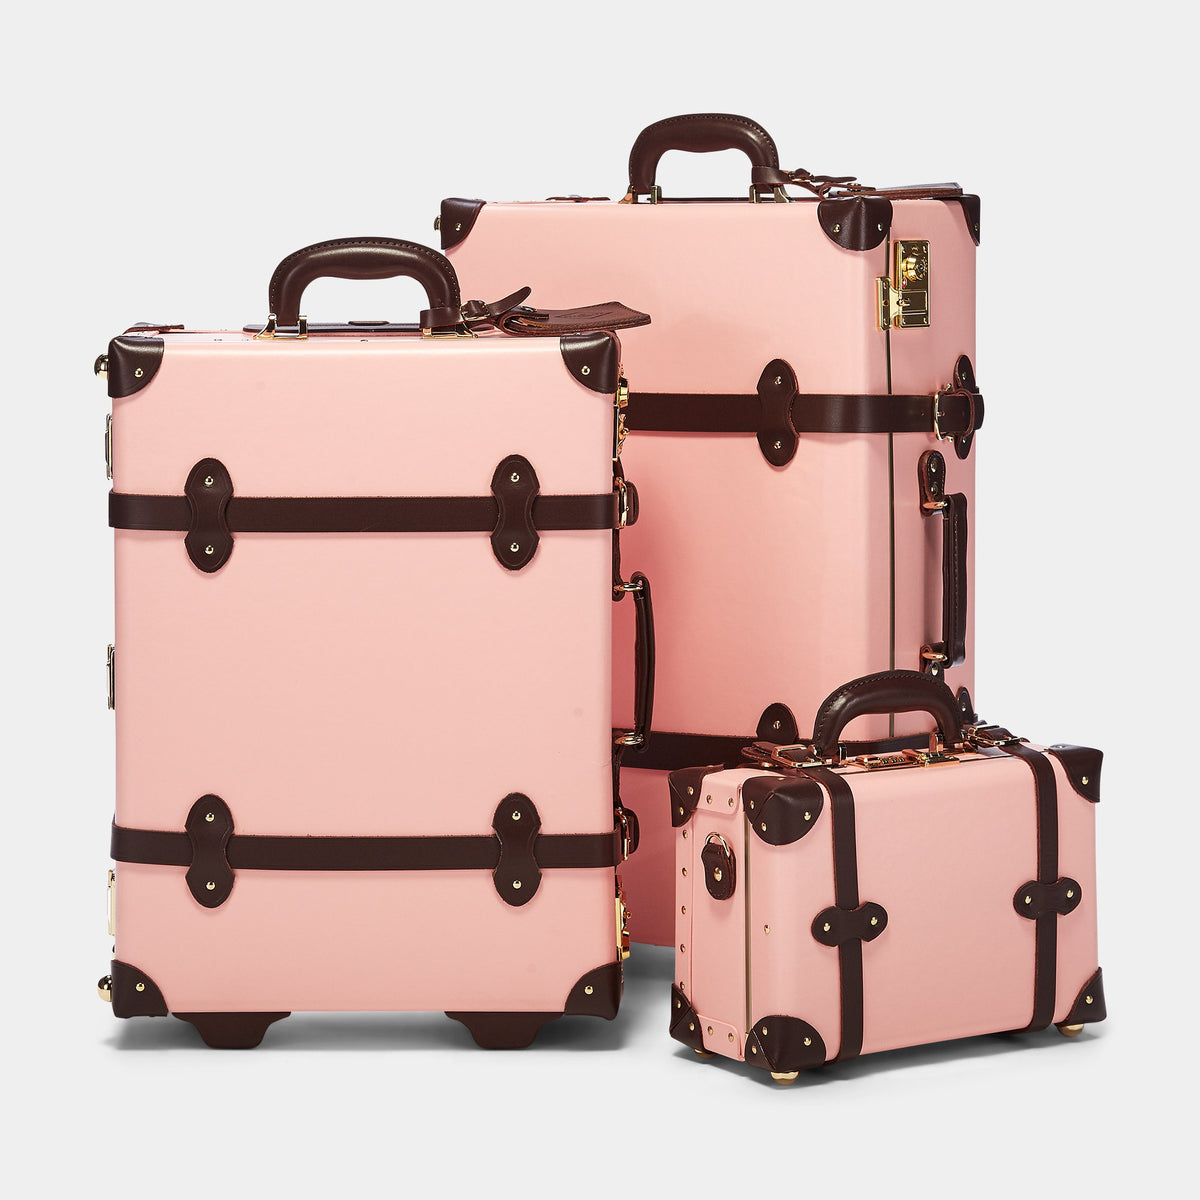 The Artiste Carryon in Pink - Old Fashioned Carry On Case - Alongside matching cases from the Artiste Pink collection